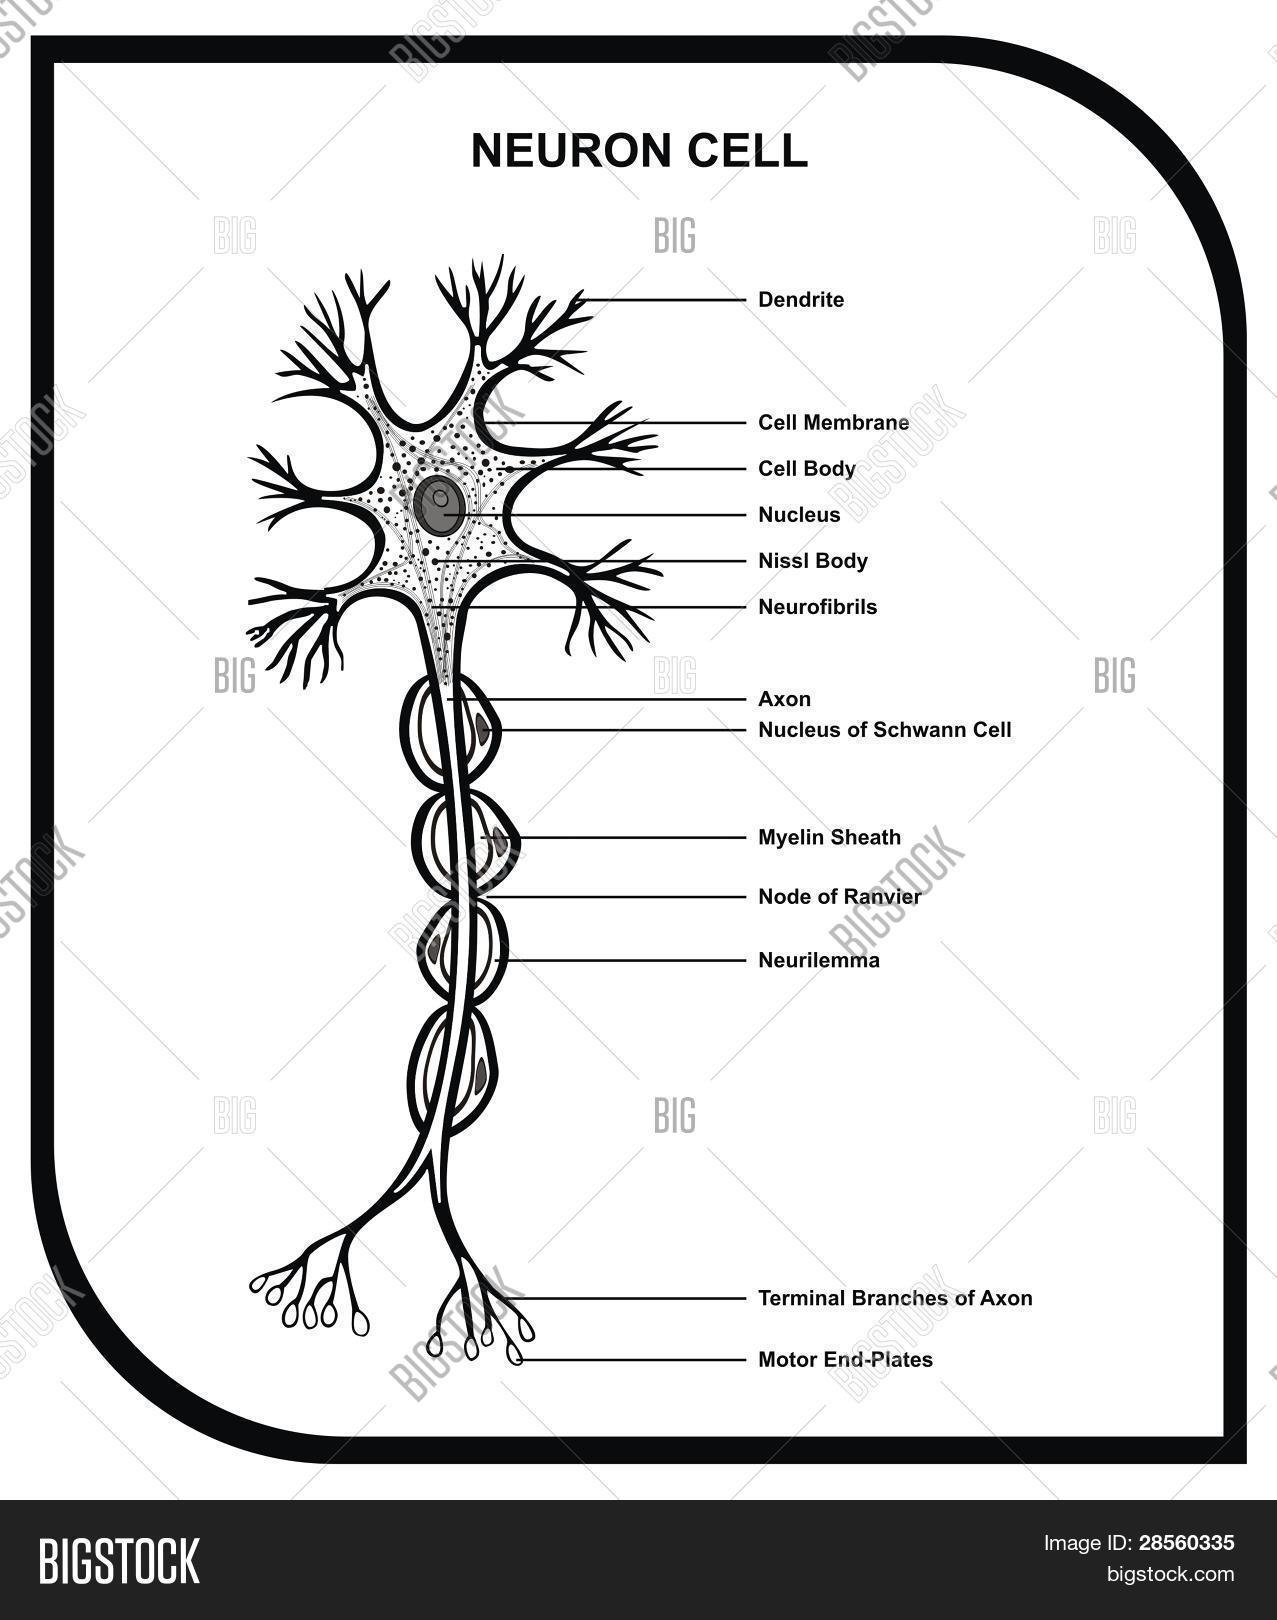 Human Neuron Cell